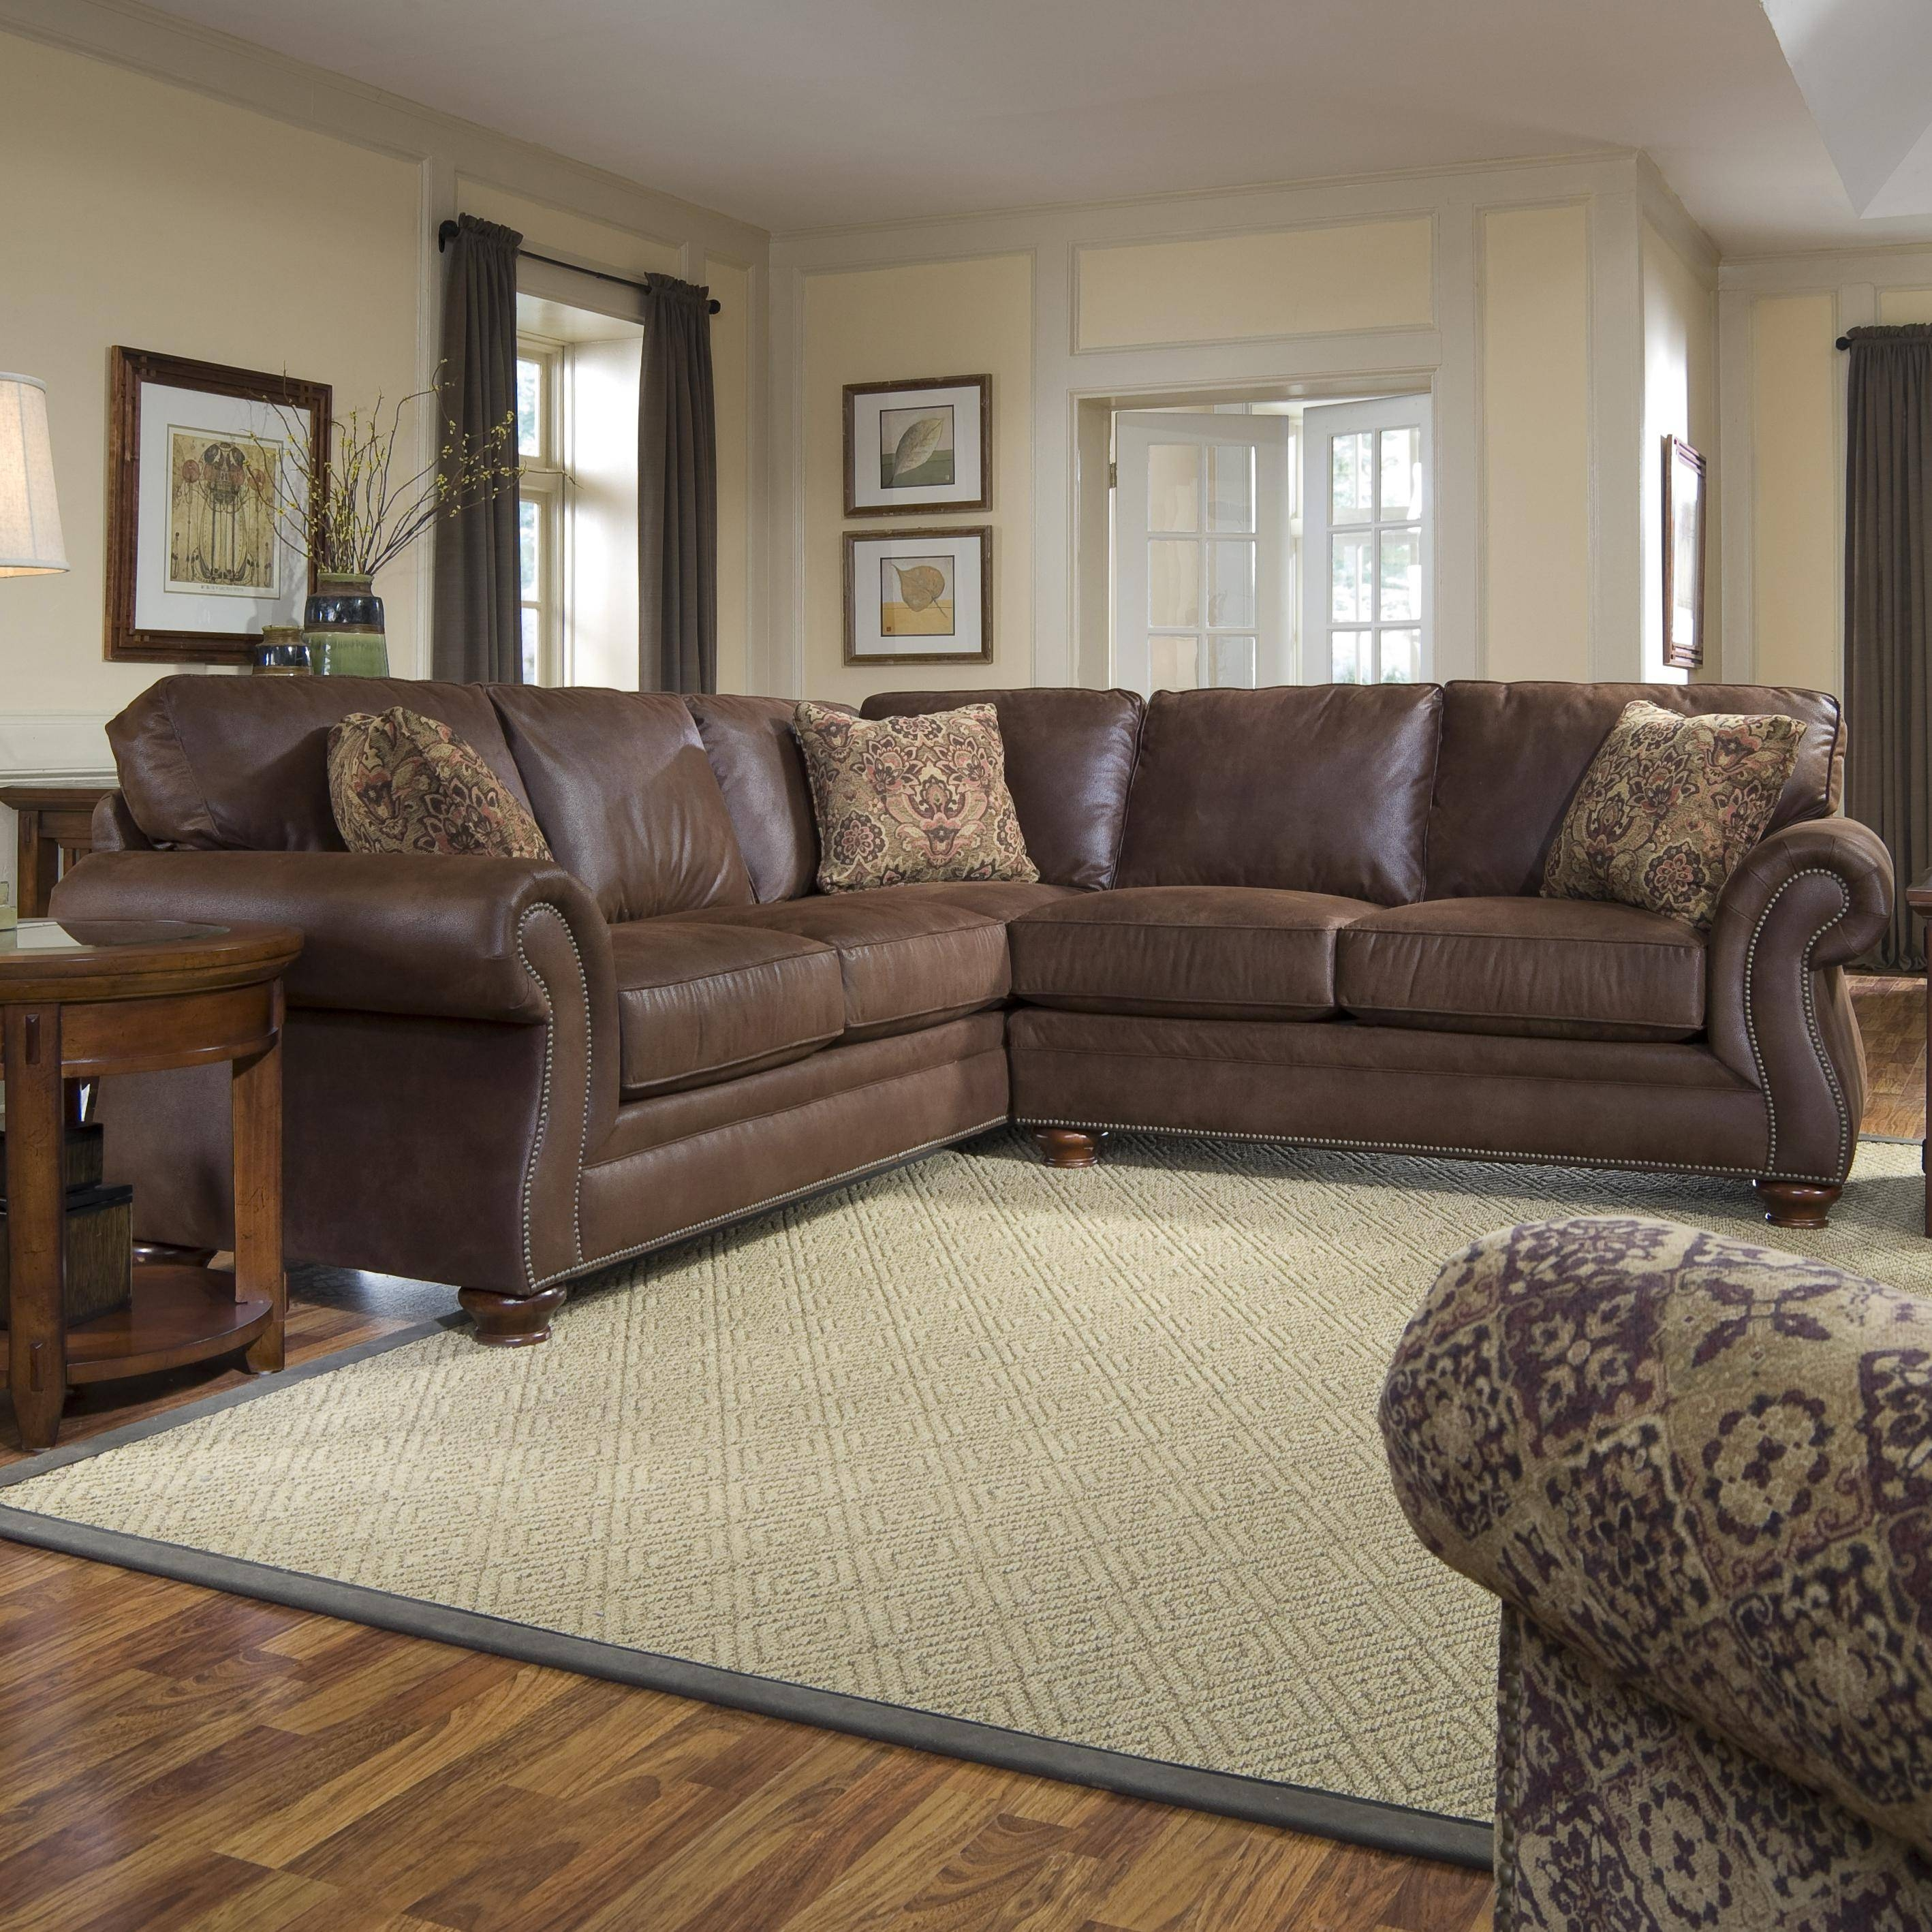 Broyhill Furniture Laramie 3 Piece Wedge Sectional Sofa - Wayside pertaining to Broyhill Sectional Sofa (Image 7 of 30)